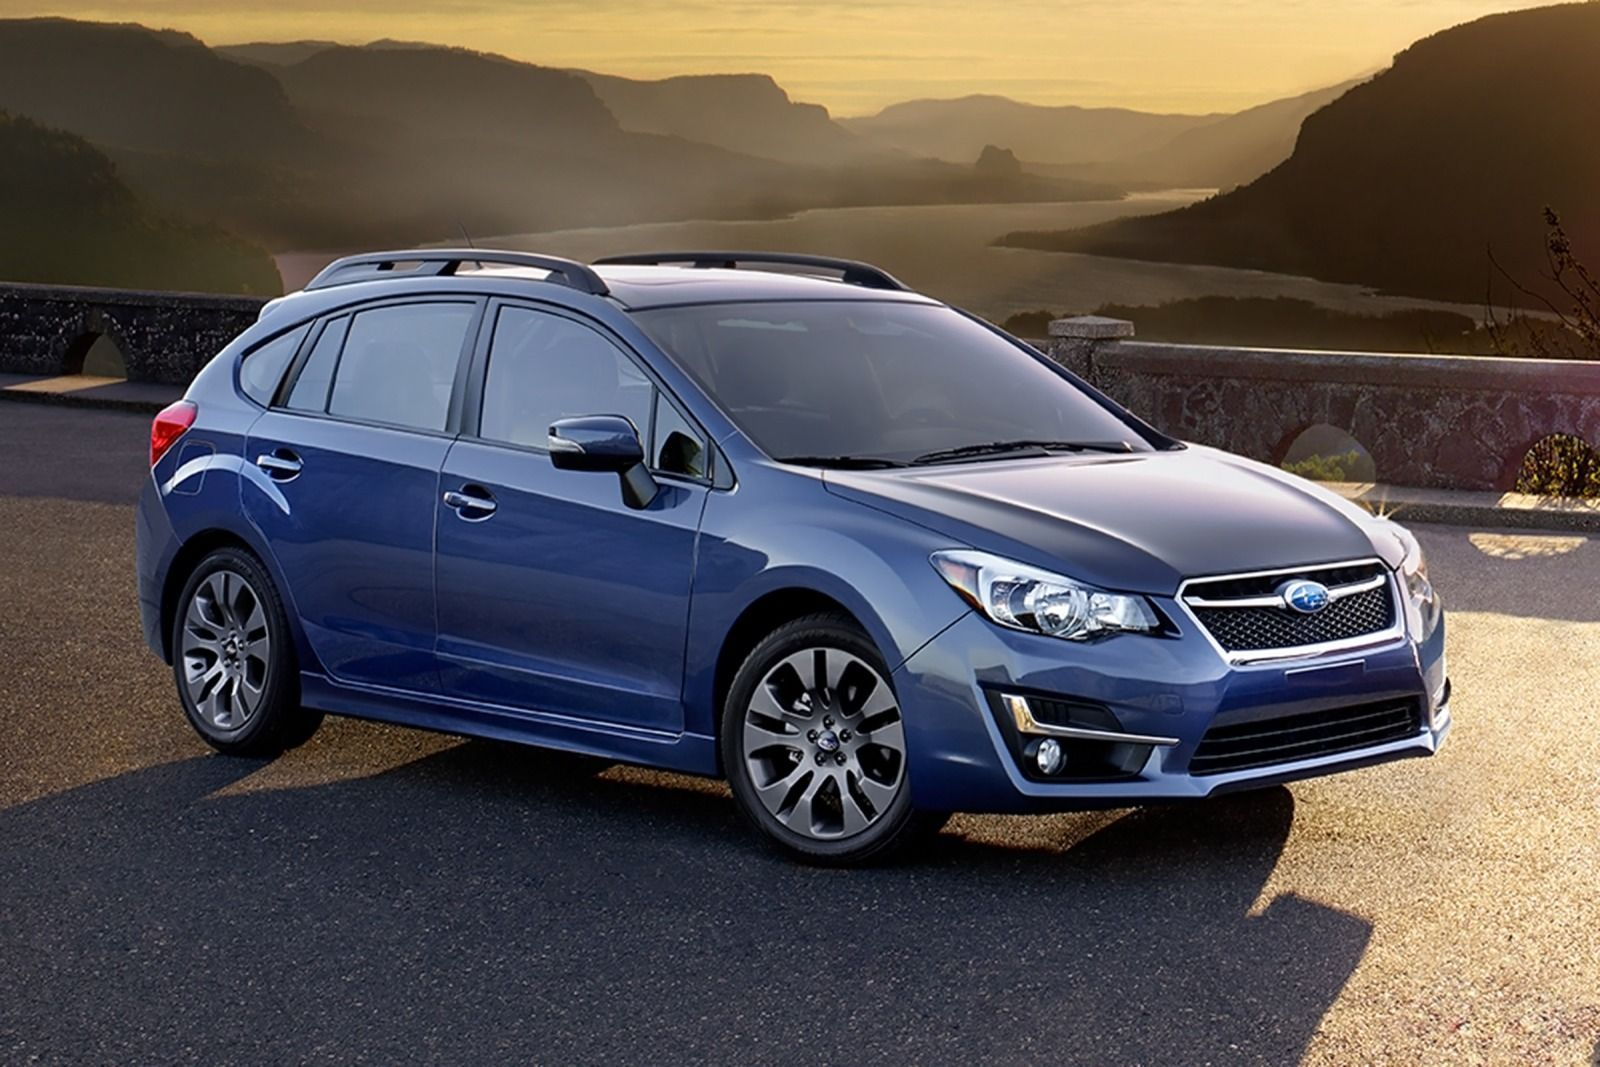 View Specs Ratings Pricing Features Photos And More On The 2015 Subaru Impreza Awd 4 Door Hatchback Discover And Compare To Subaru Impreza Subaru Impreza